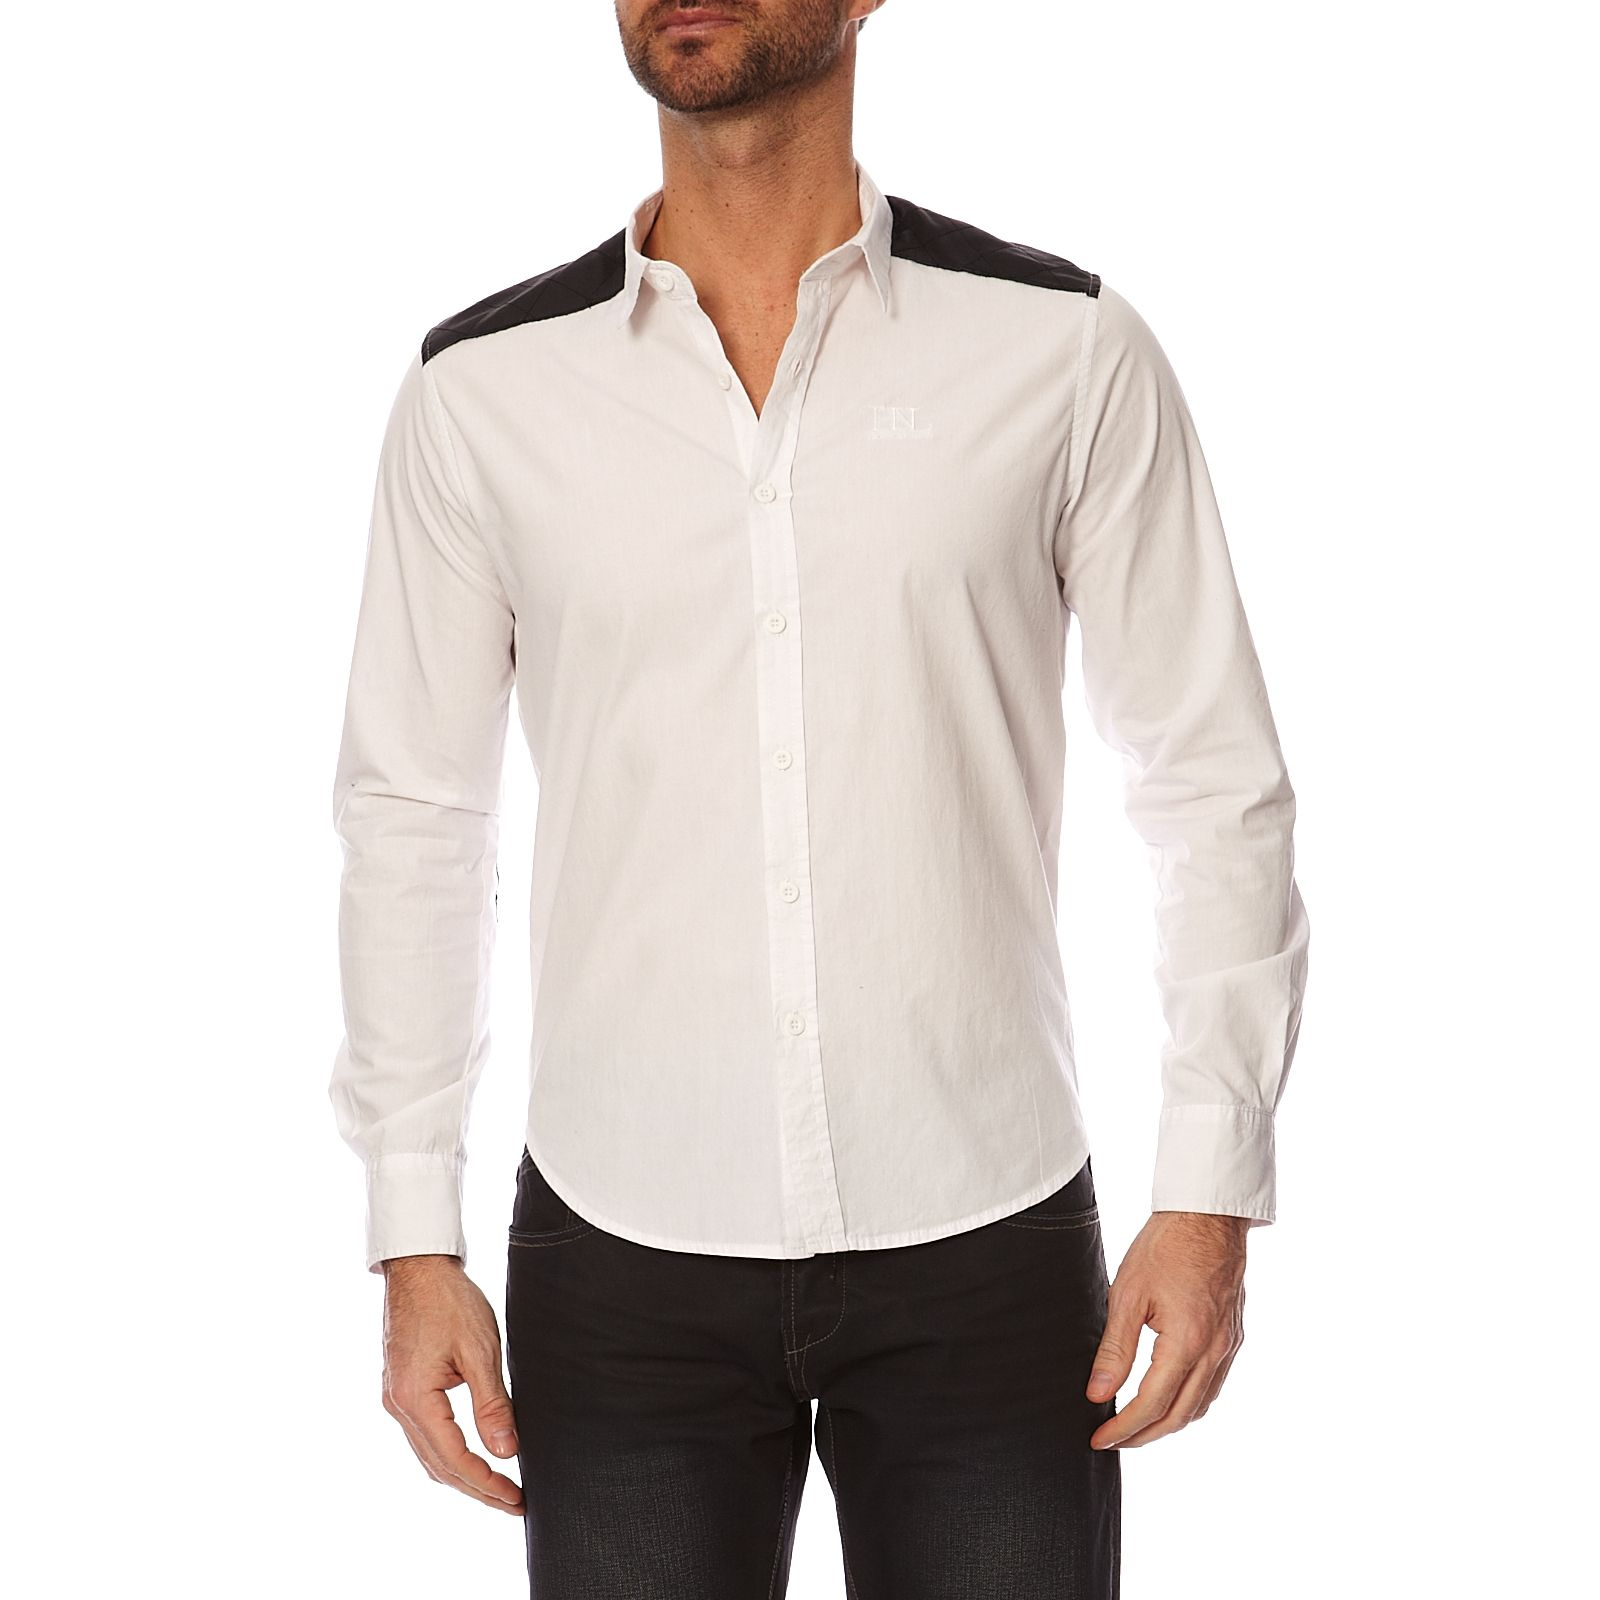 Longues Homme Hope N NivernoChemise Blanc V Life Manches WEY29IeDH